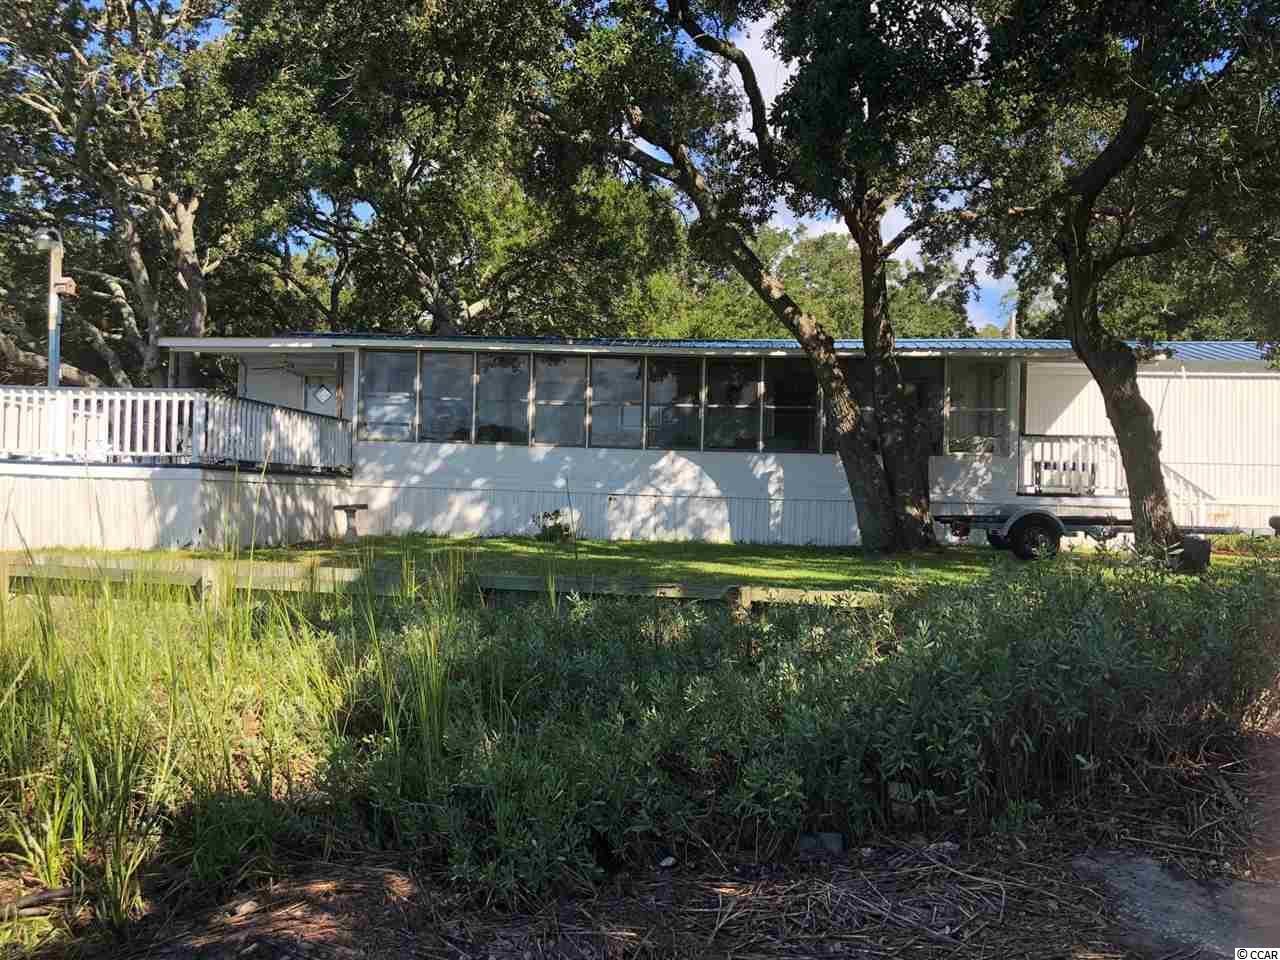 Marsh Front with breathe taking view of sunsets and wild life. Spacious mobile home with a sunroom and deck for panoramic view of the water. Boat ramp access, public pier for park owners, boat trailer parking lot, and public gazebo are free amenities. Home has a storage building for Golf Car storage. All appliances convey and home is partly furnished which makes it move in ready. Newer Metal roof, HVAC, and Insulated windows. Yearly lot lease includes land taxes, trash pick up, yard maintenance, water and septic sewer. Come see!